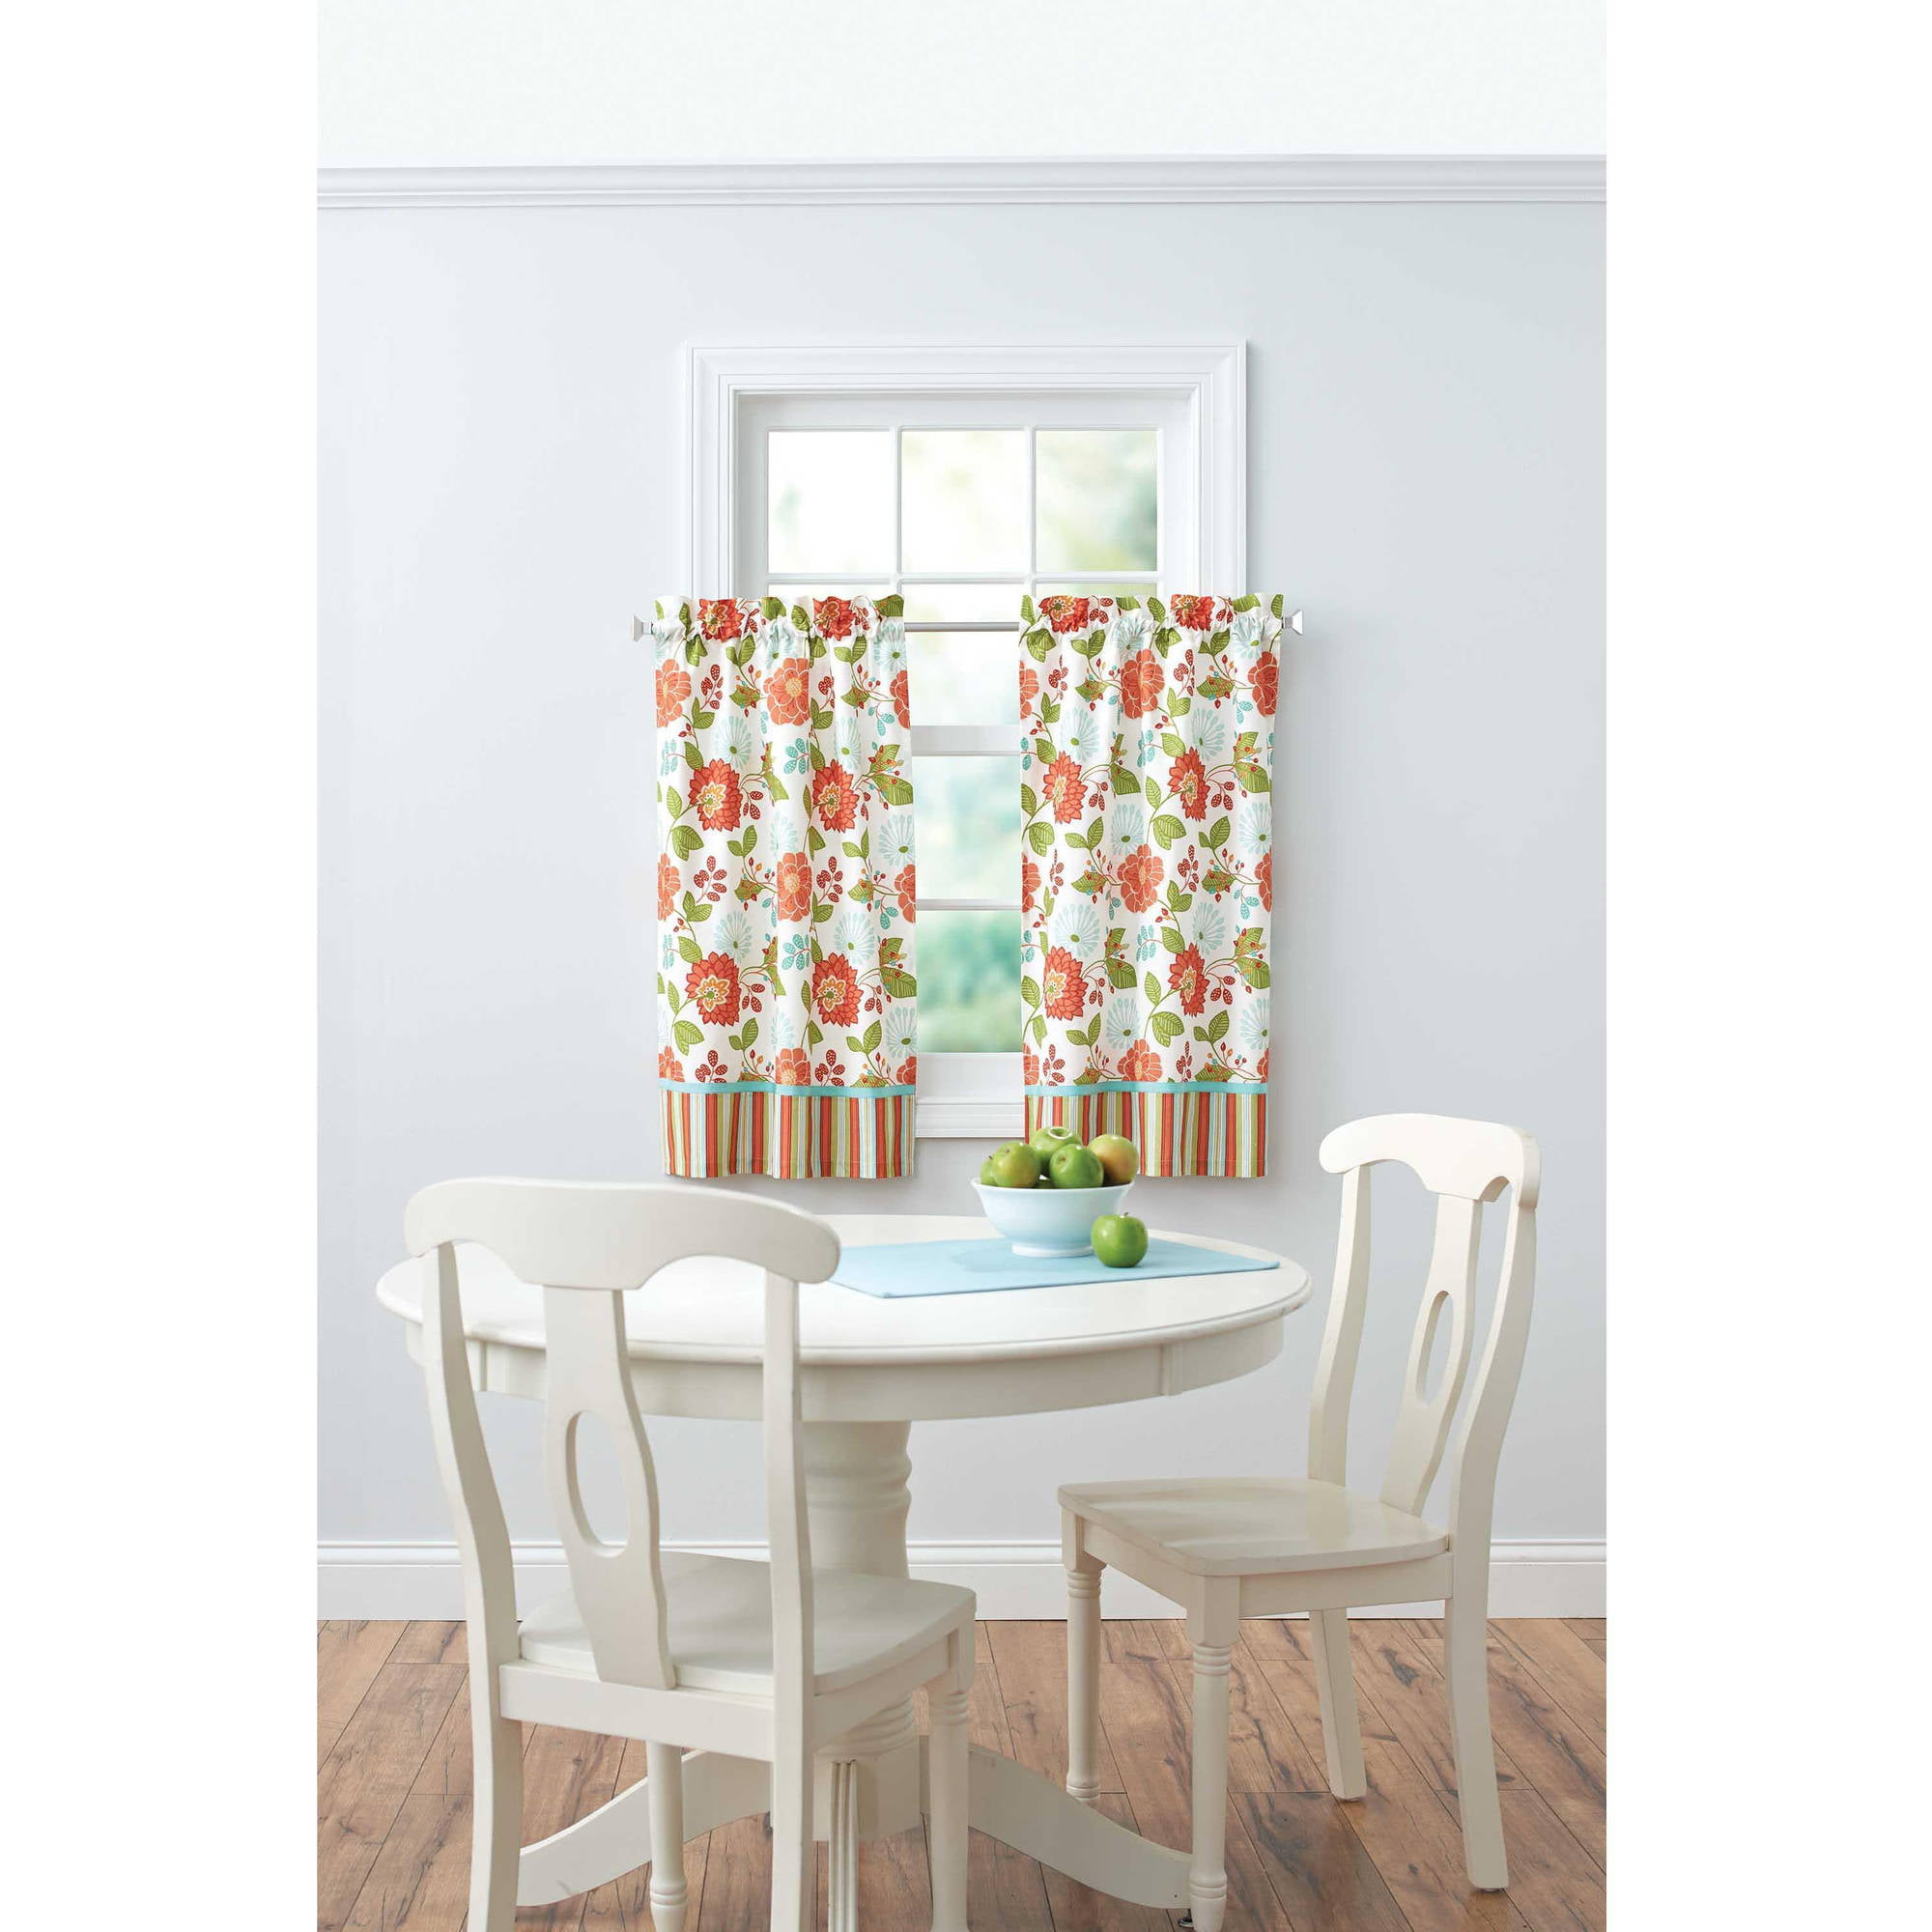 Better homes and gardens jacobean stripe kitchen kitchen curtains set of 2 7 better homes and gardens